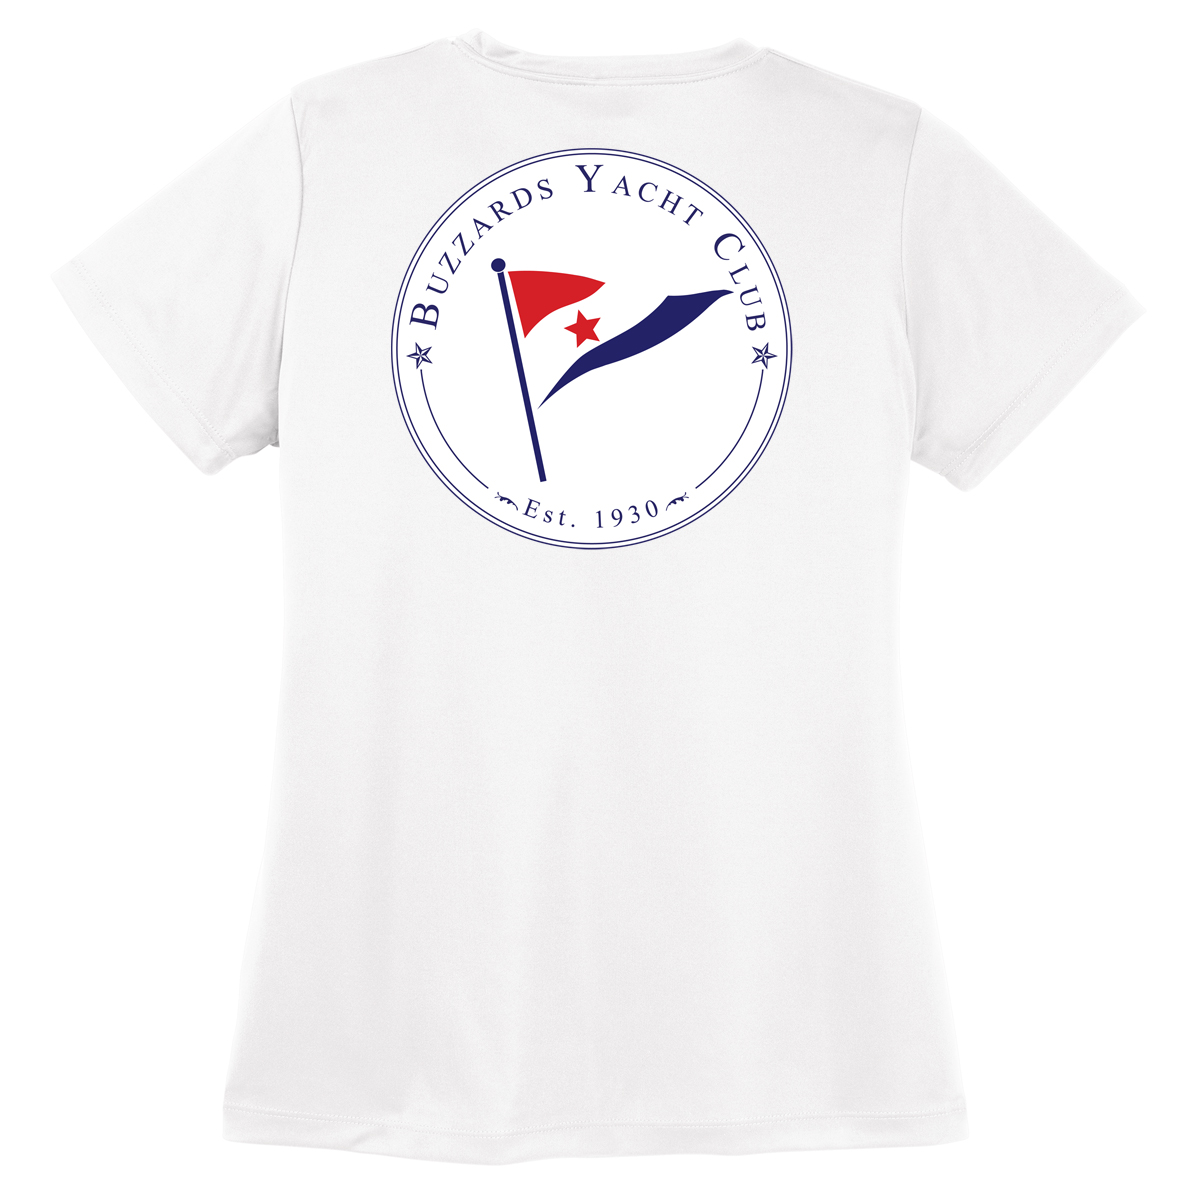 Buzzards Yacht Club - Women's Short Sleeve Tech Tee (BUZ212)